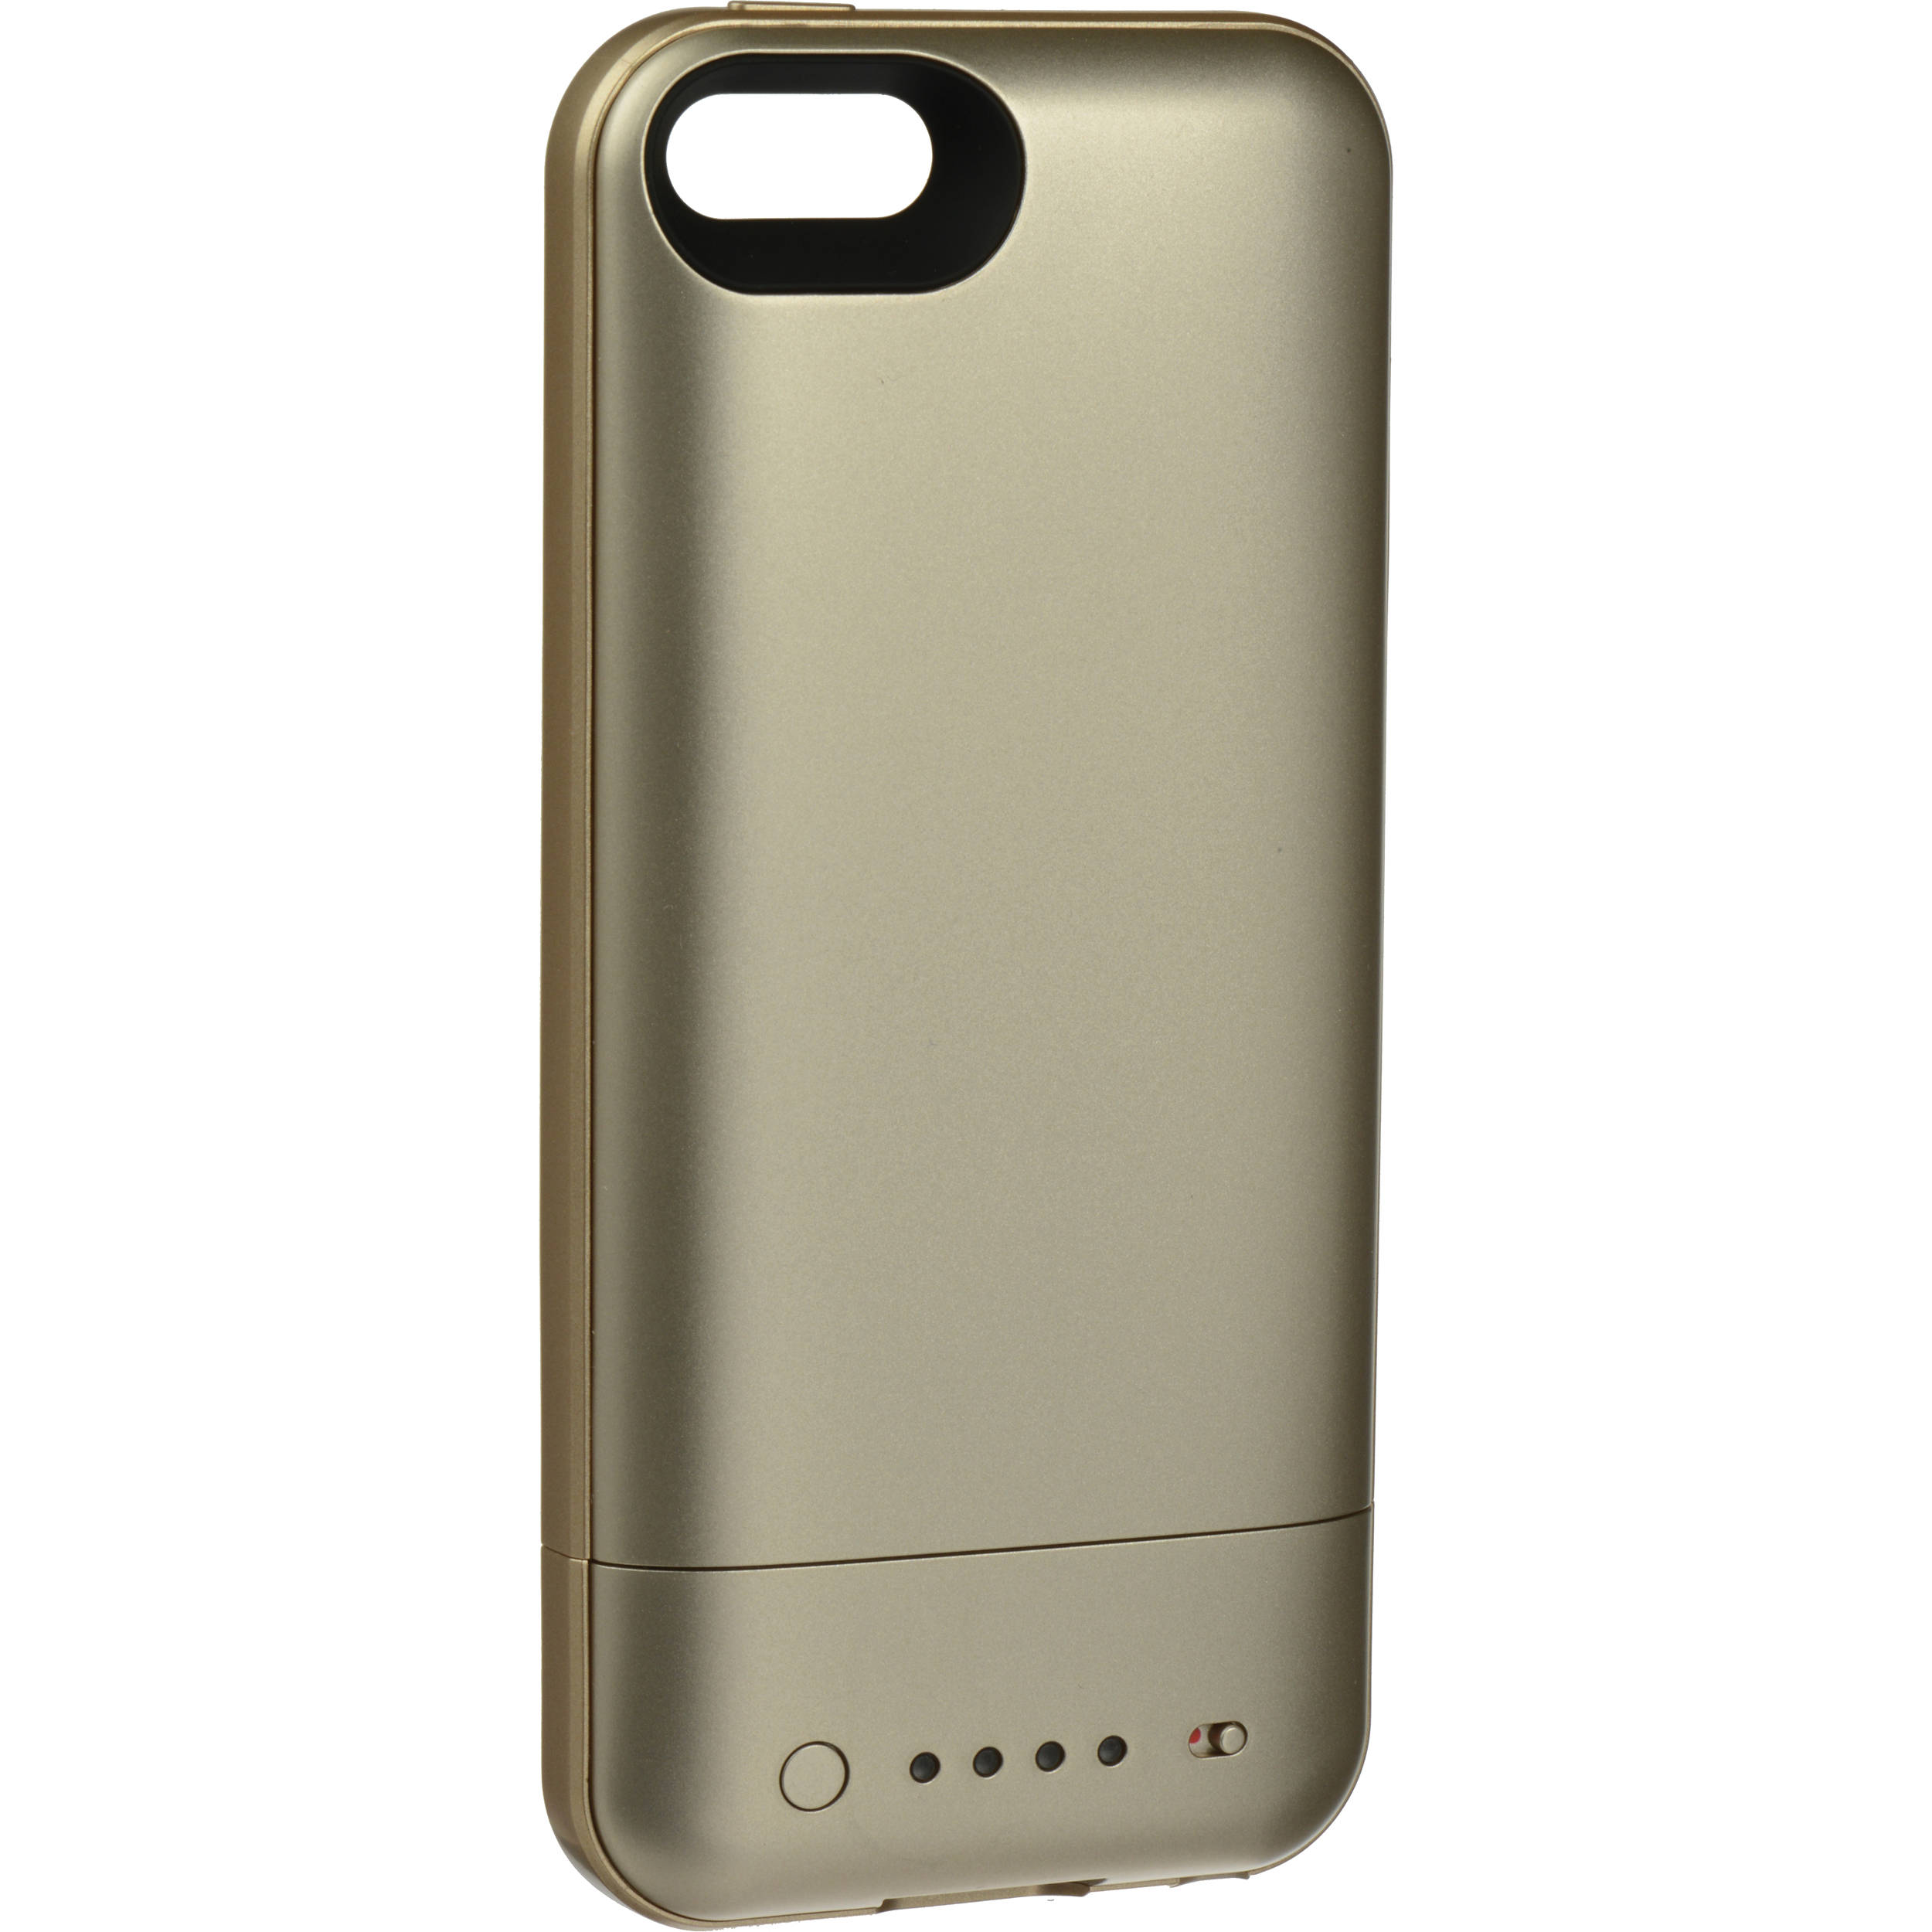 Mophie Air Iphone 5 Review Mophie Jpa Ip Gld Juice Pack Air For